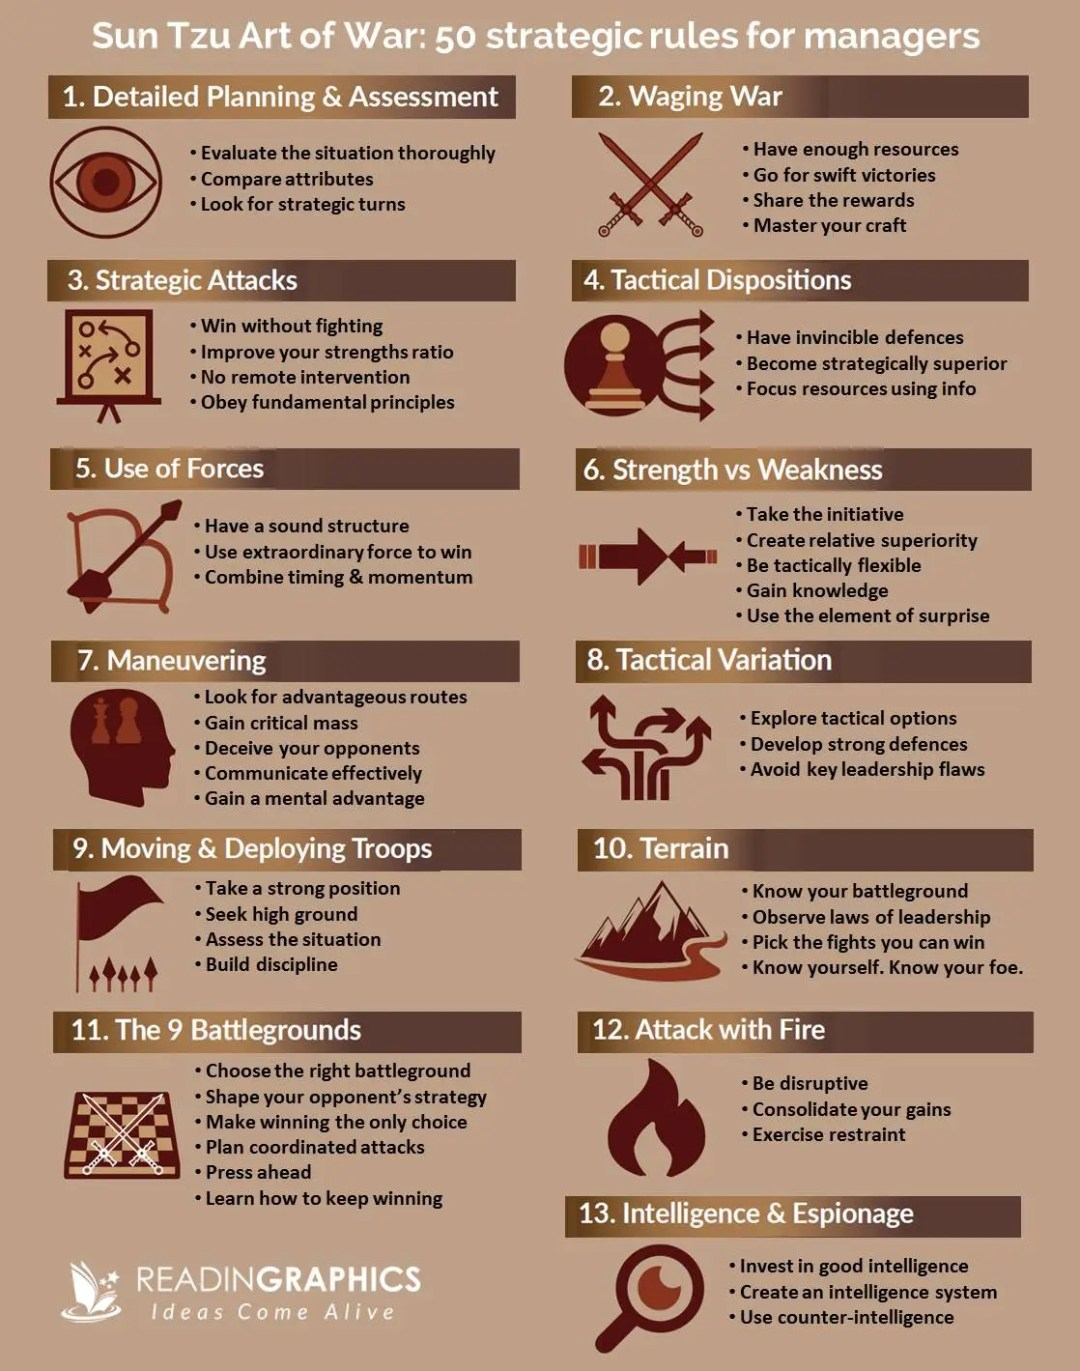 Sun Tzu The Art of War for Managers summary_50 strategic rules